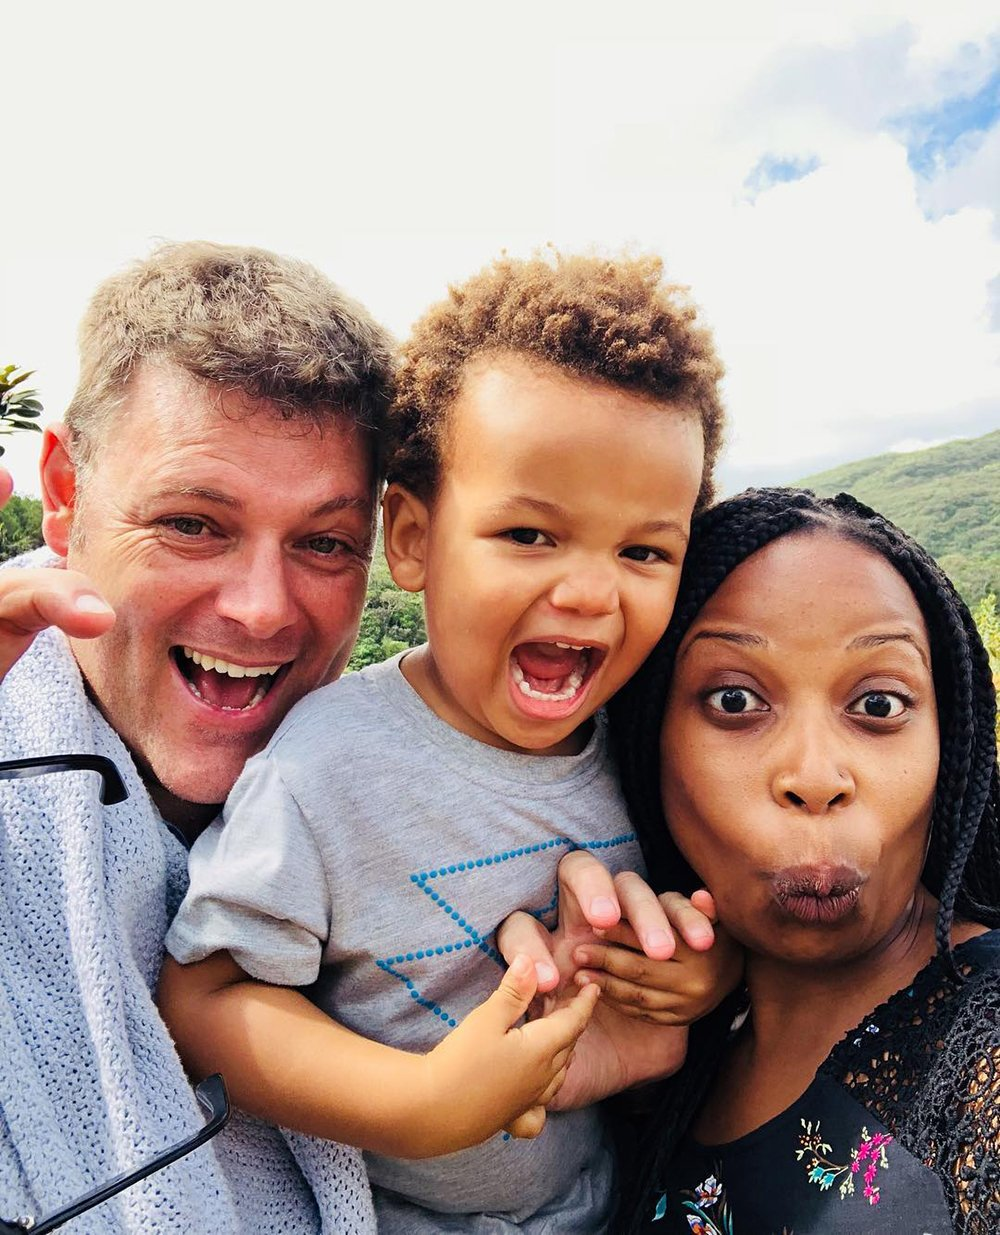 Parenting in South Africa